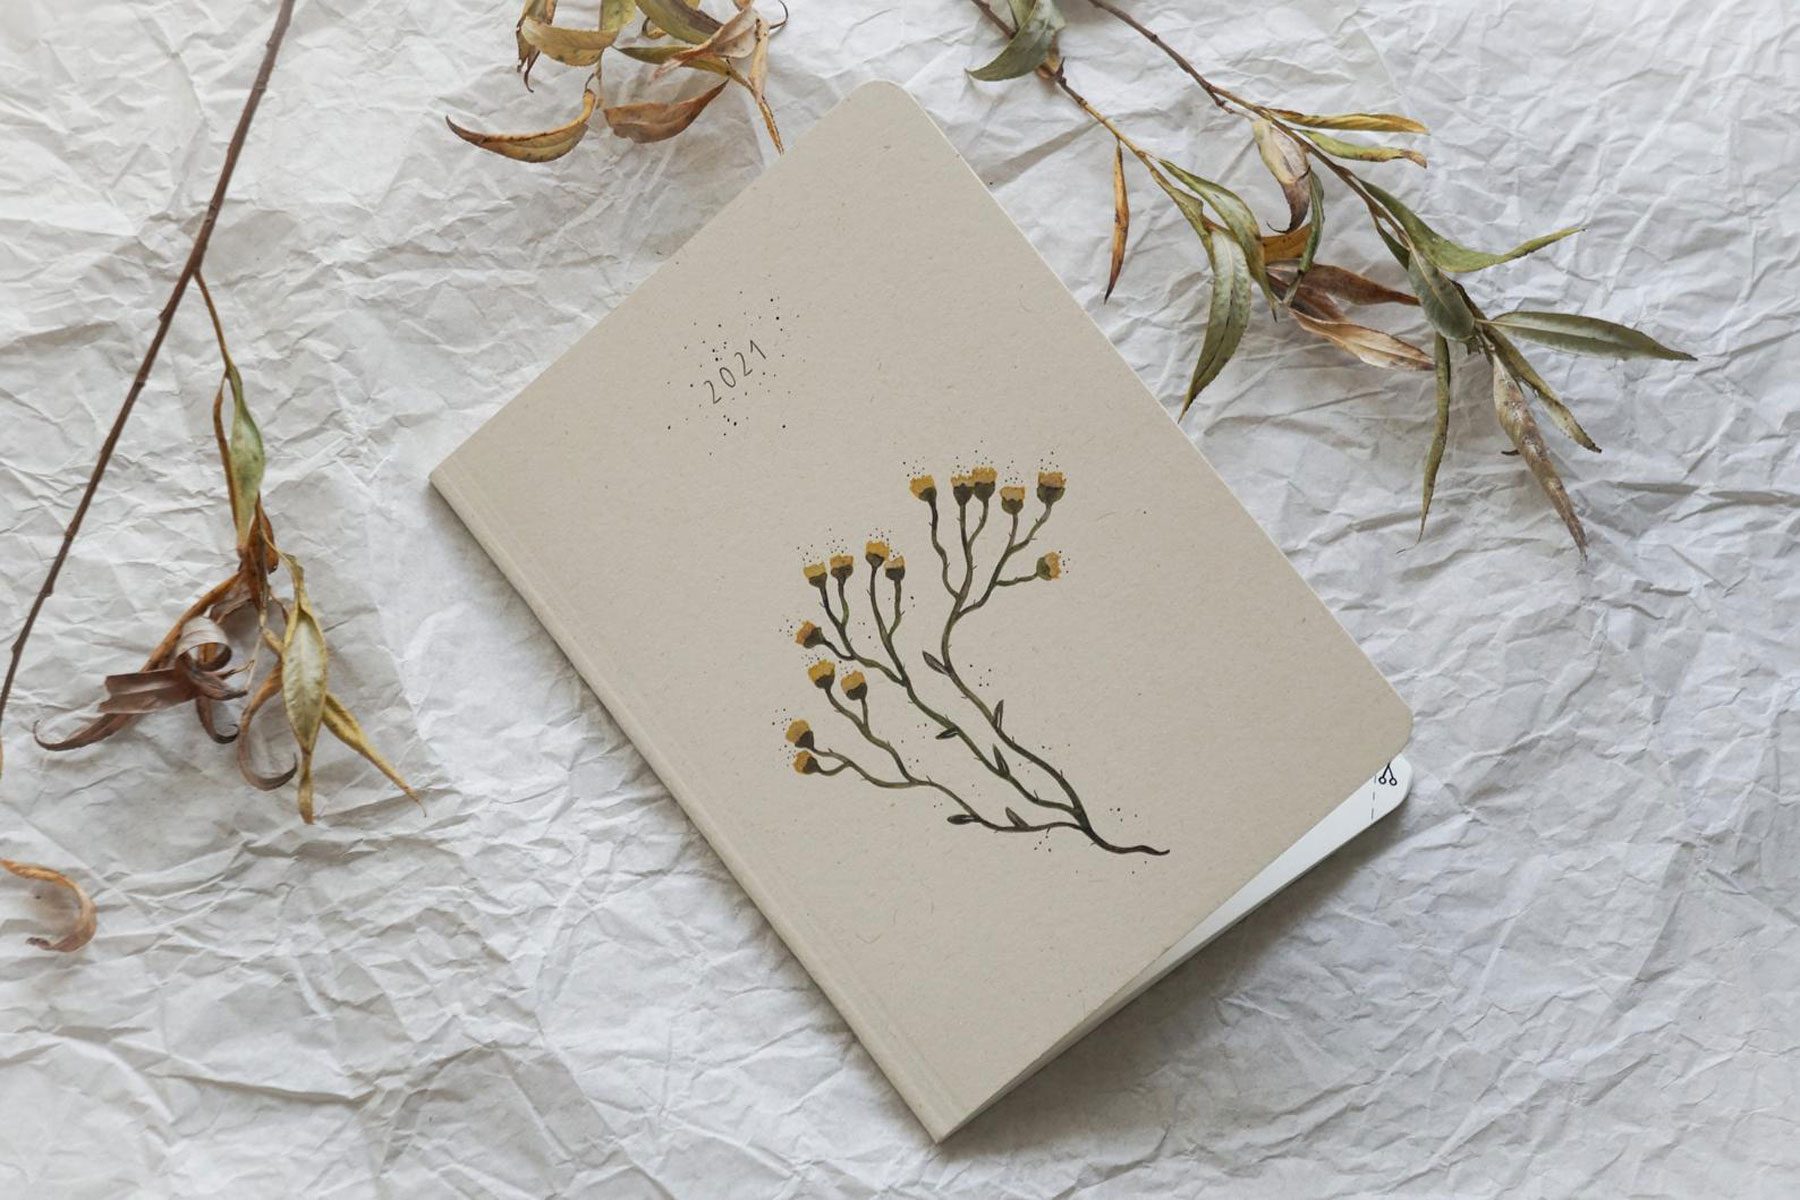 Cream colored and floral planner notebook